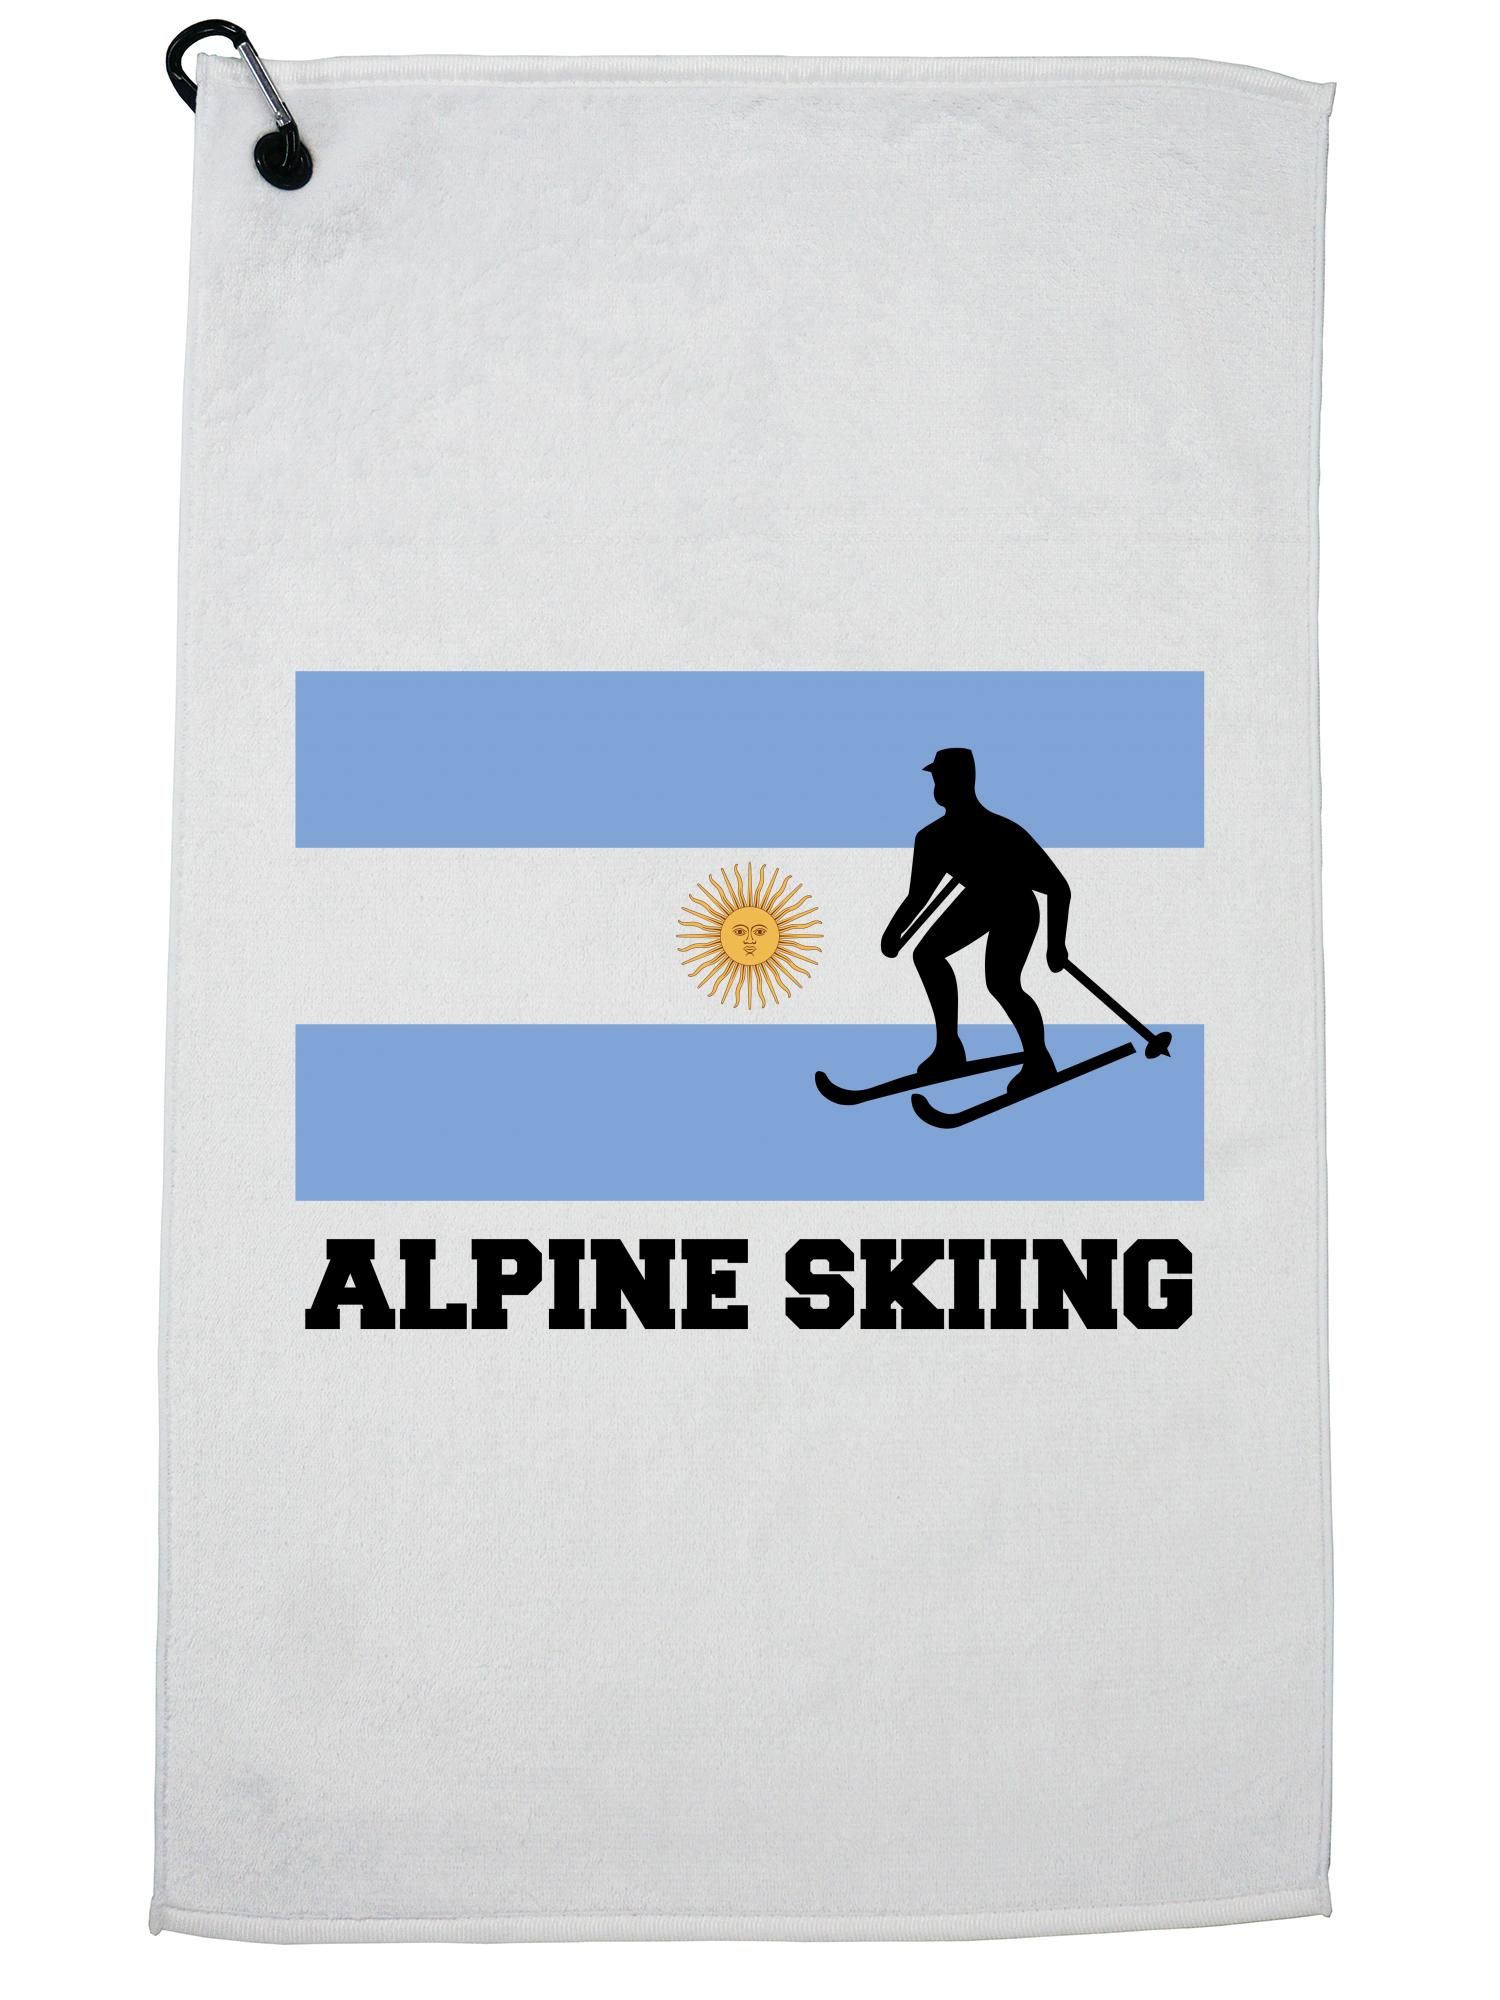 Argentina Olympic Alpine Skiing Flag Silhouette Golf Towel with Carabiner Clip by Hollywood Thread